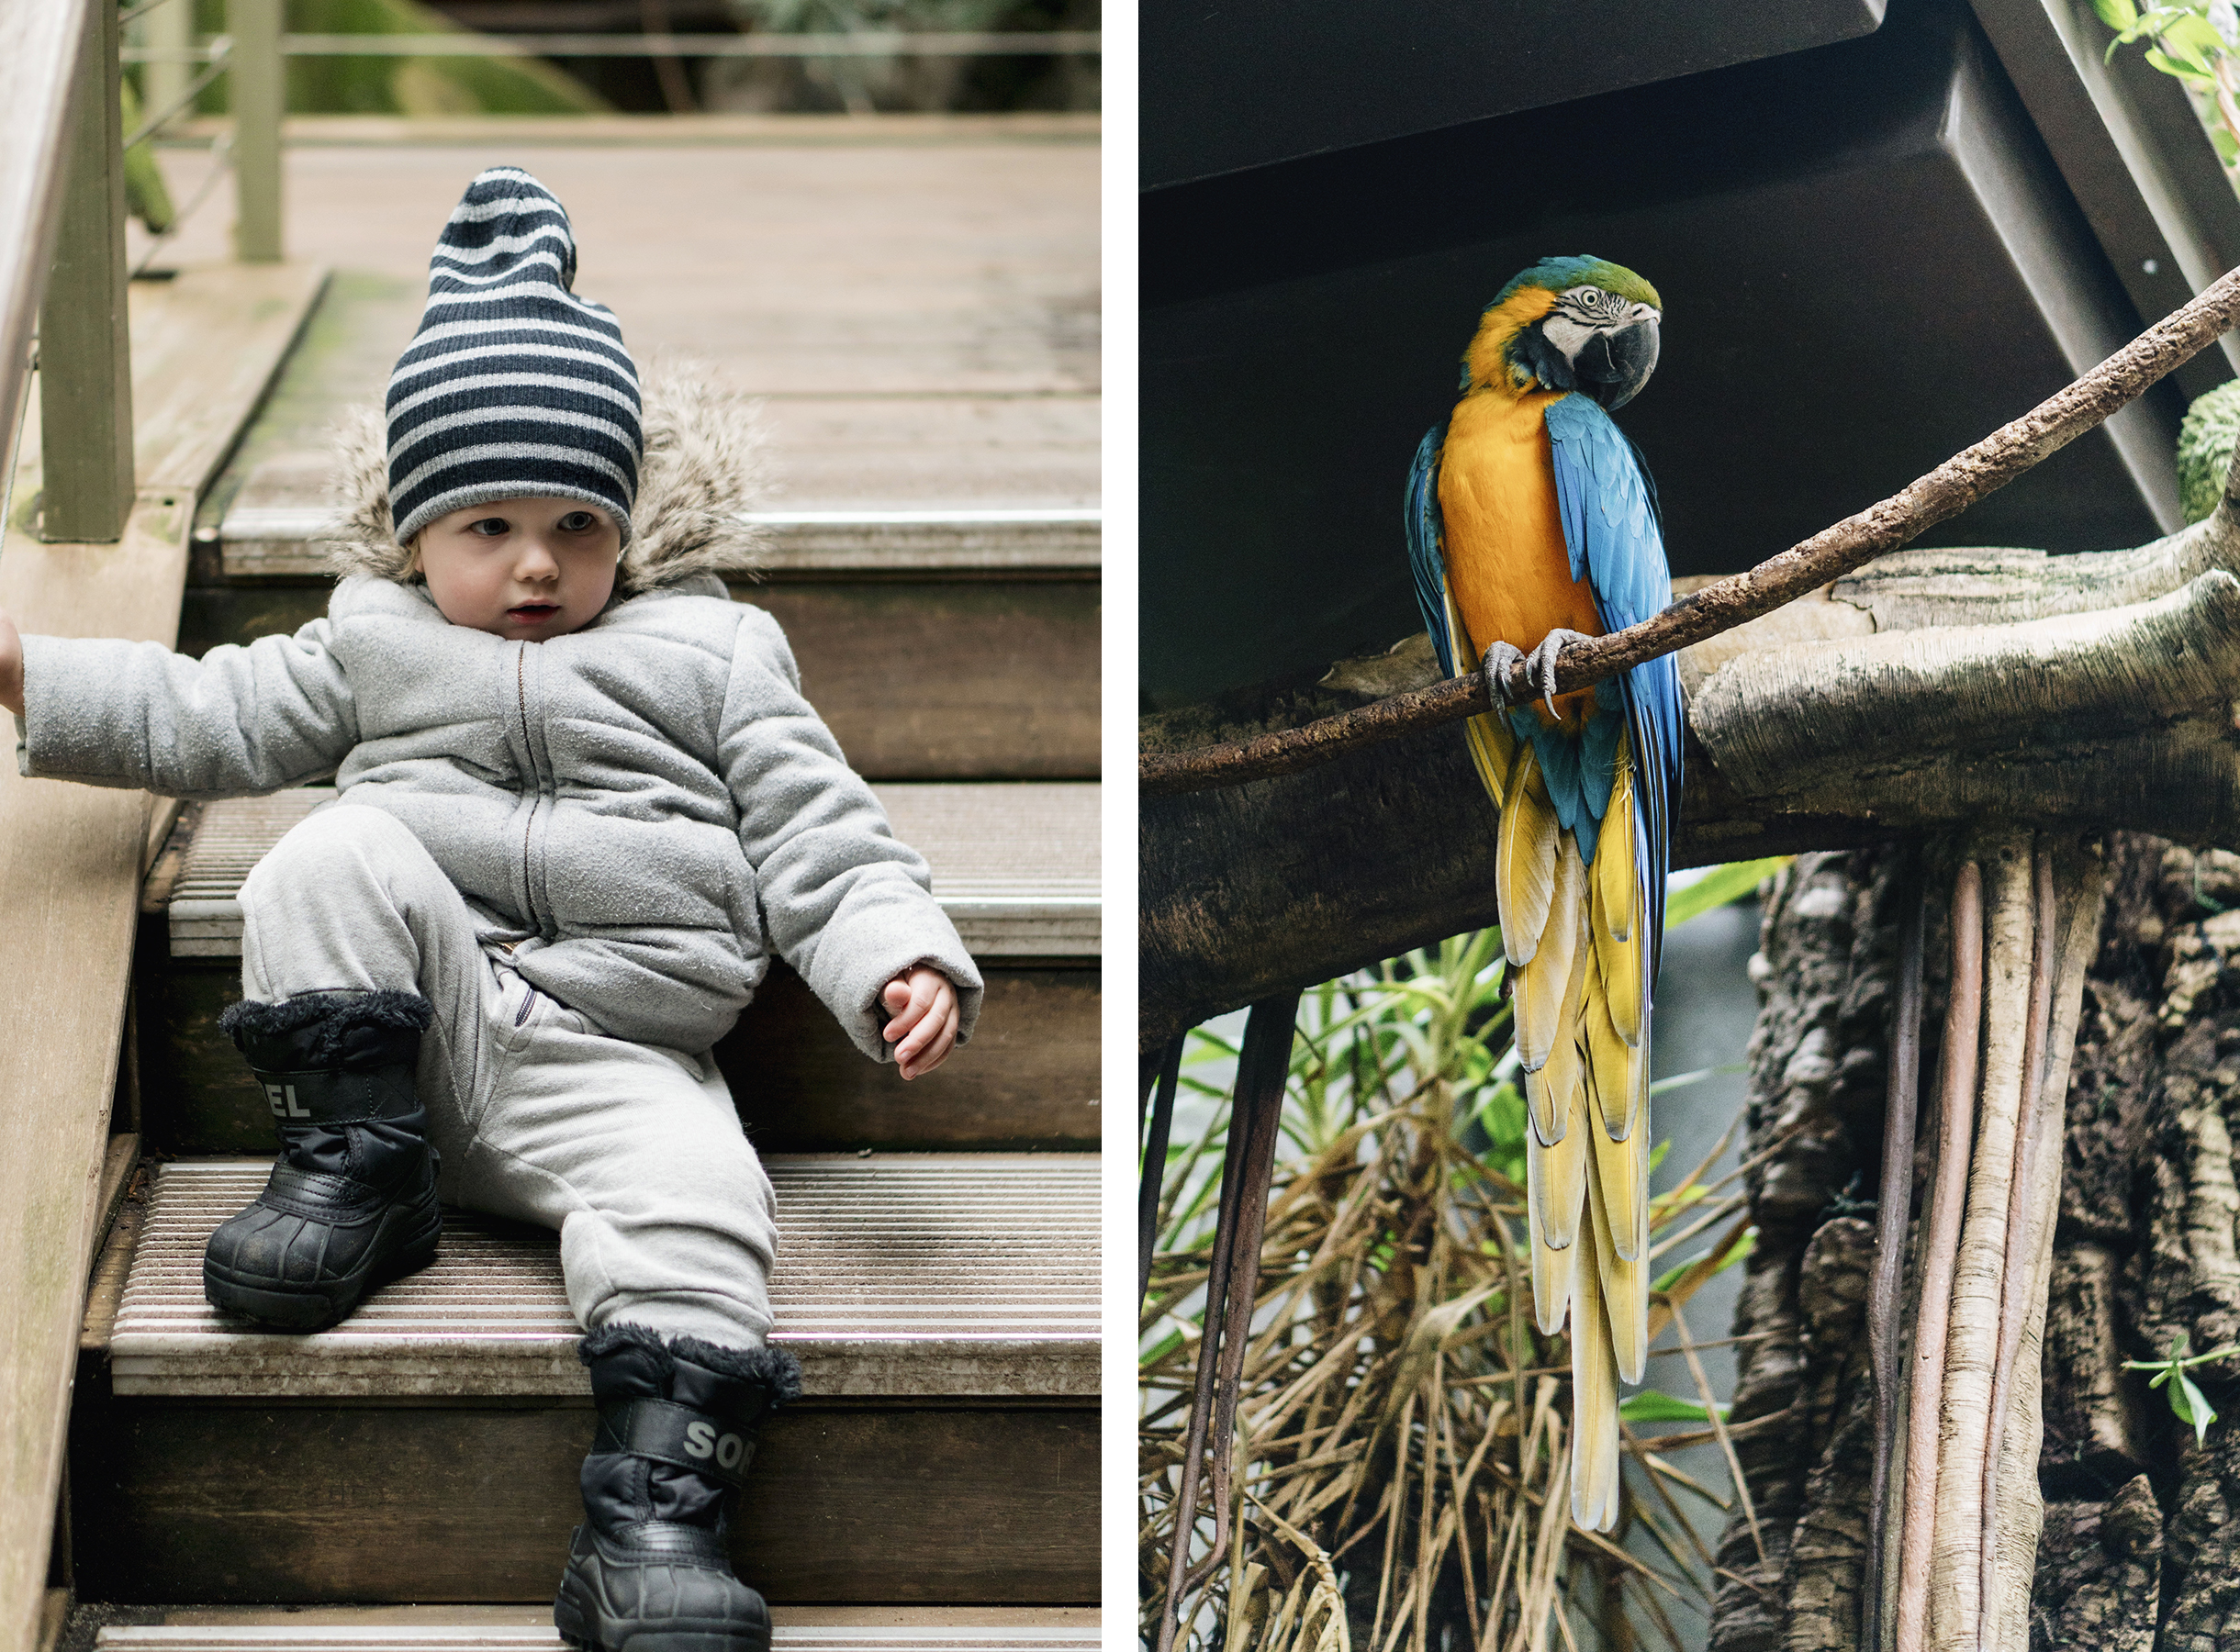 Central Park Zoo - Top 10 things to do in NYC with young kids | New York City travel guide